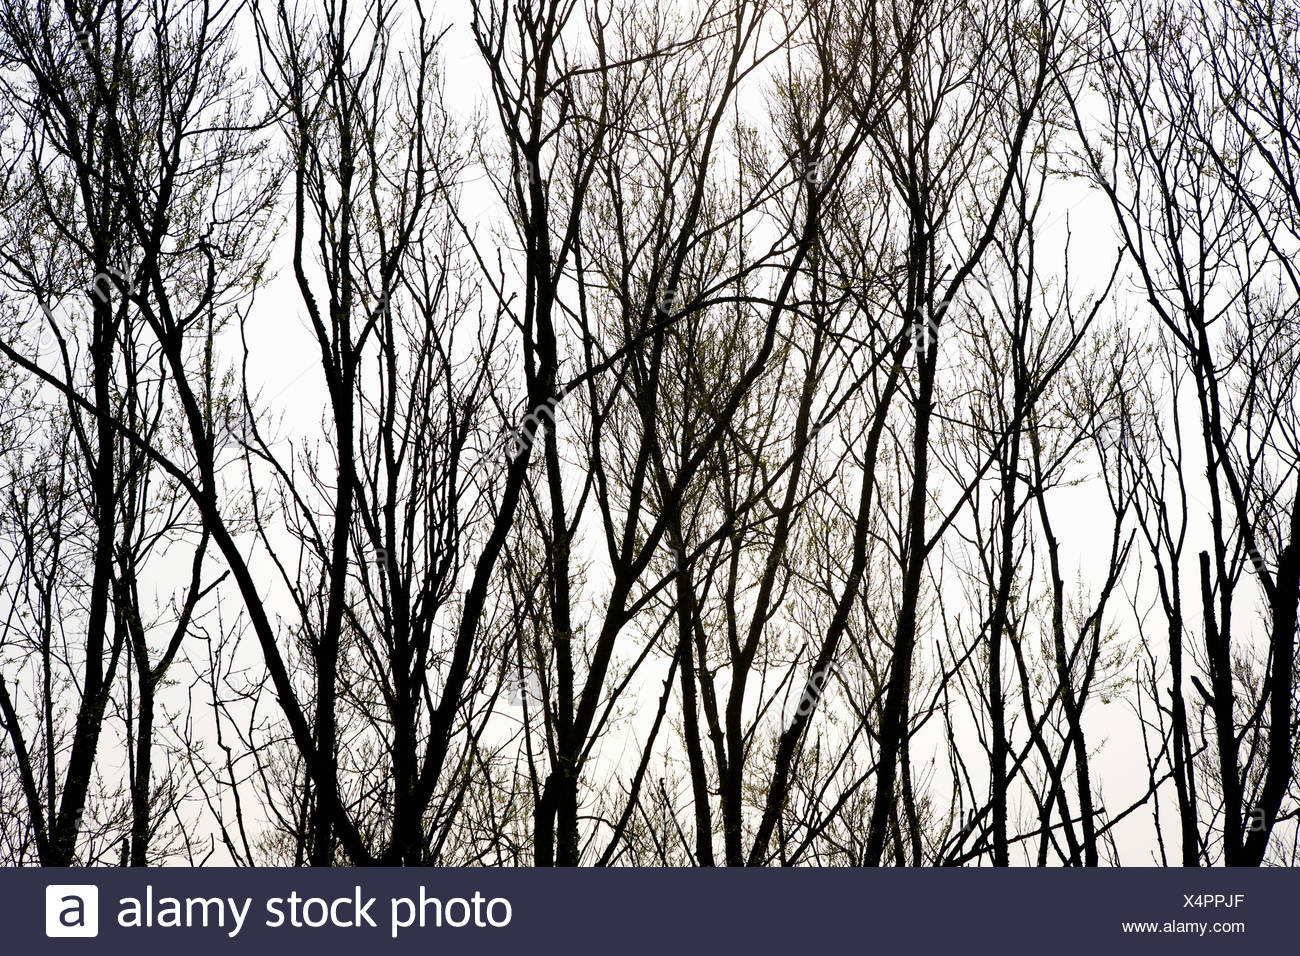 Silhouette of trees Photo Stock